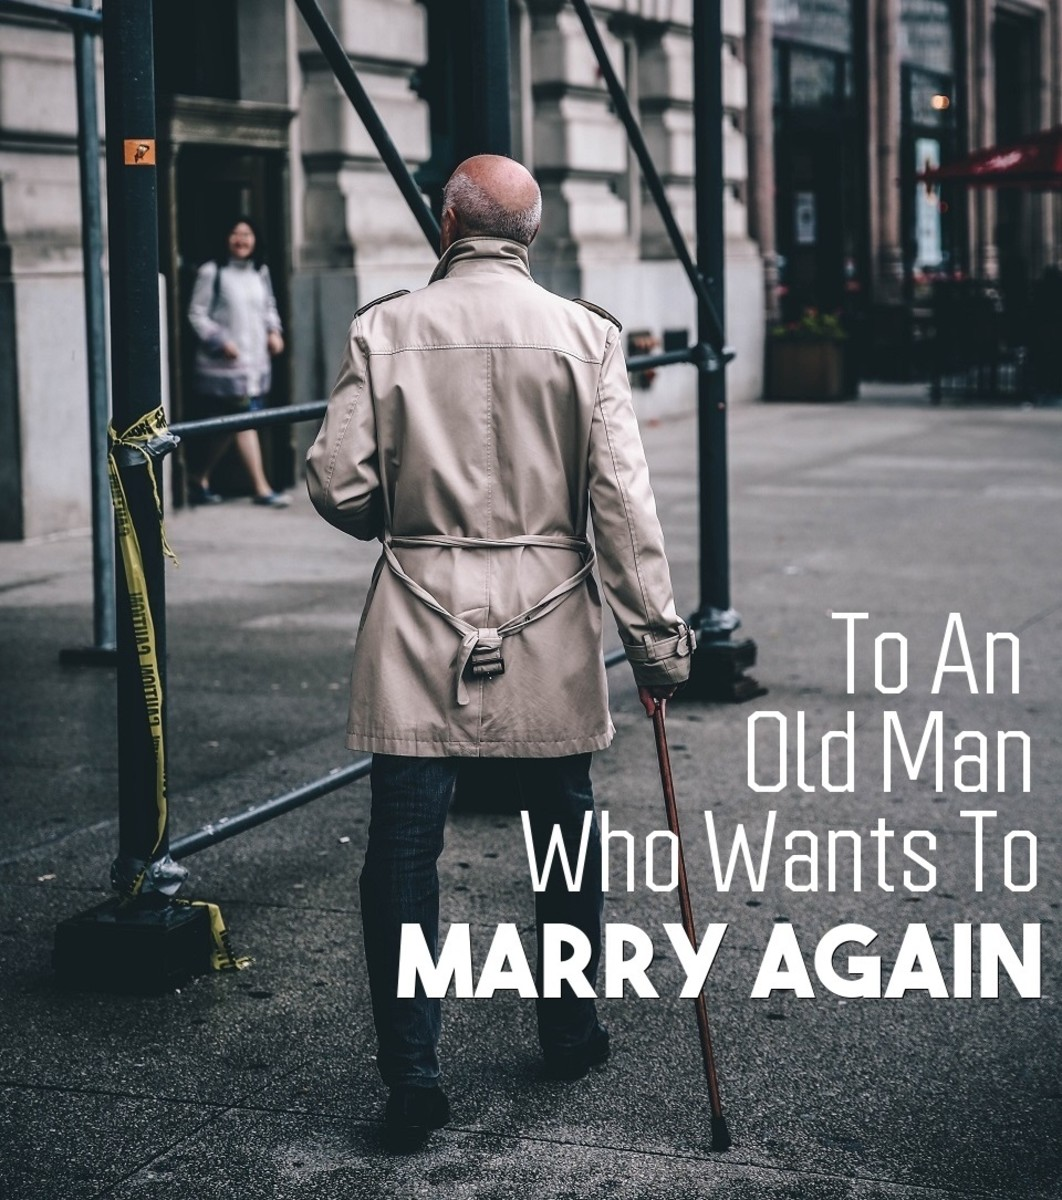 Marriage proposal during the senior years is a reality